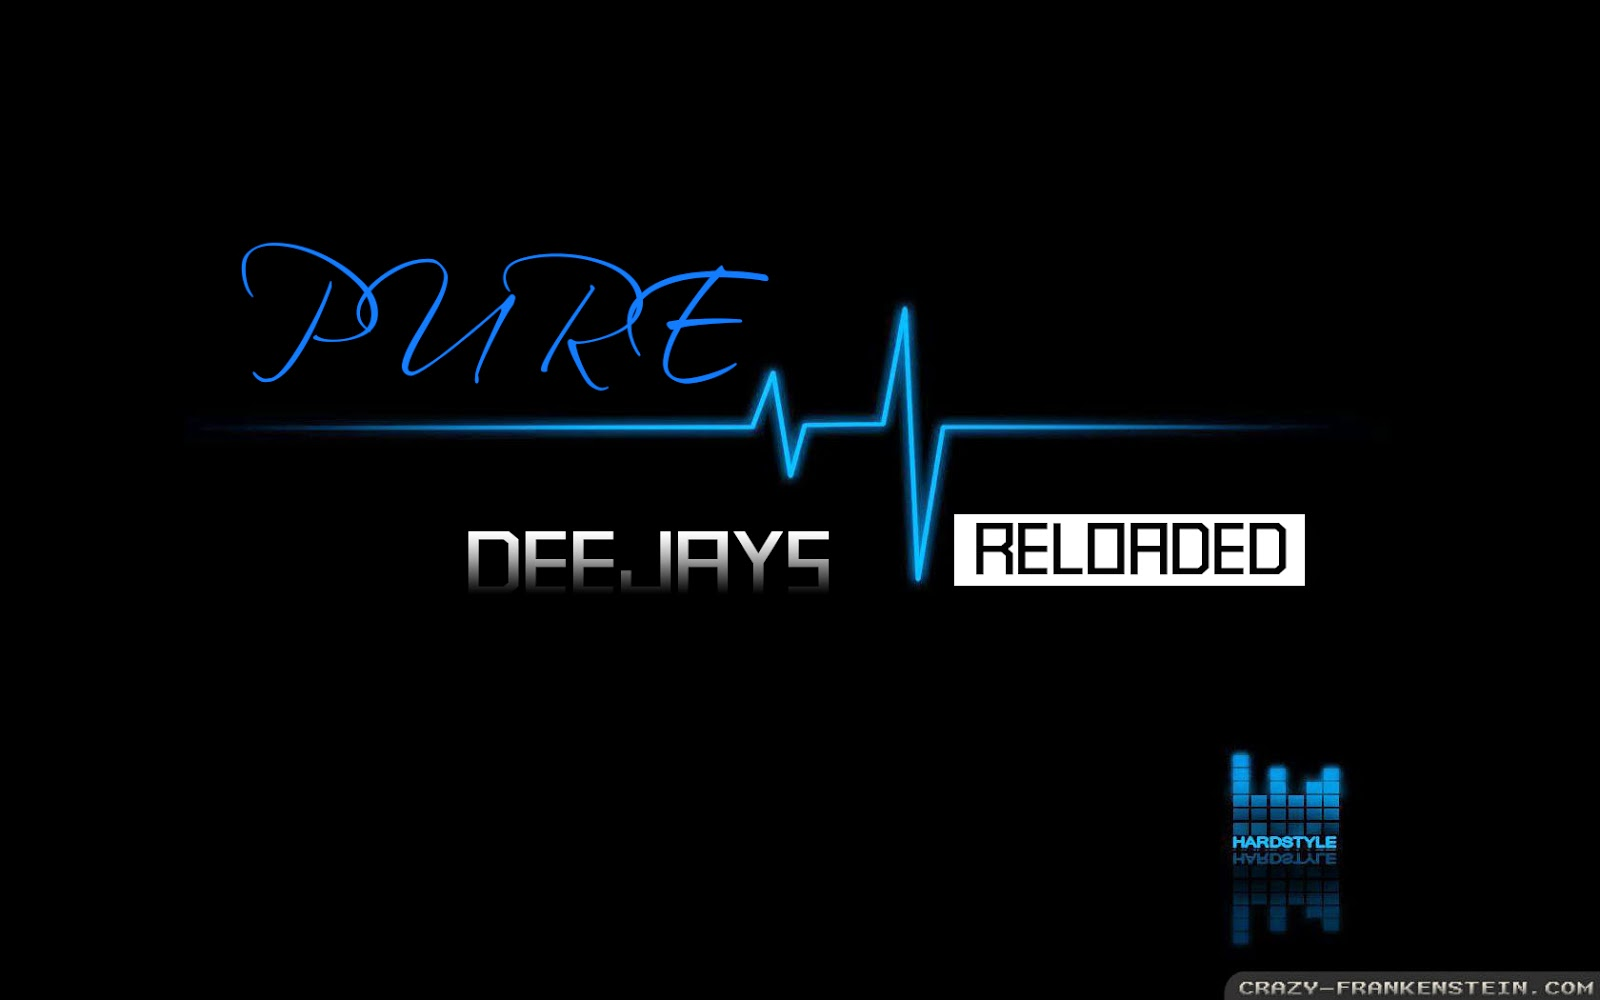 pure deejay wallpaper - pure djs reloaded